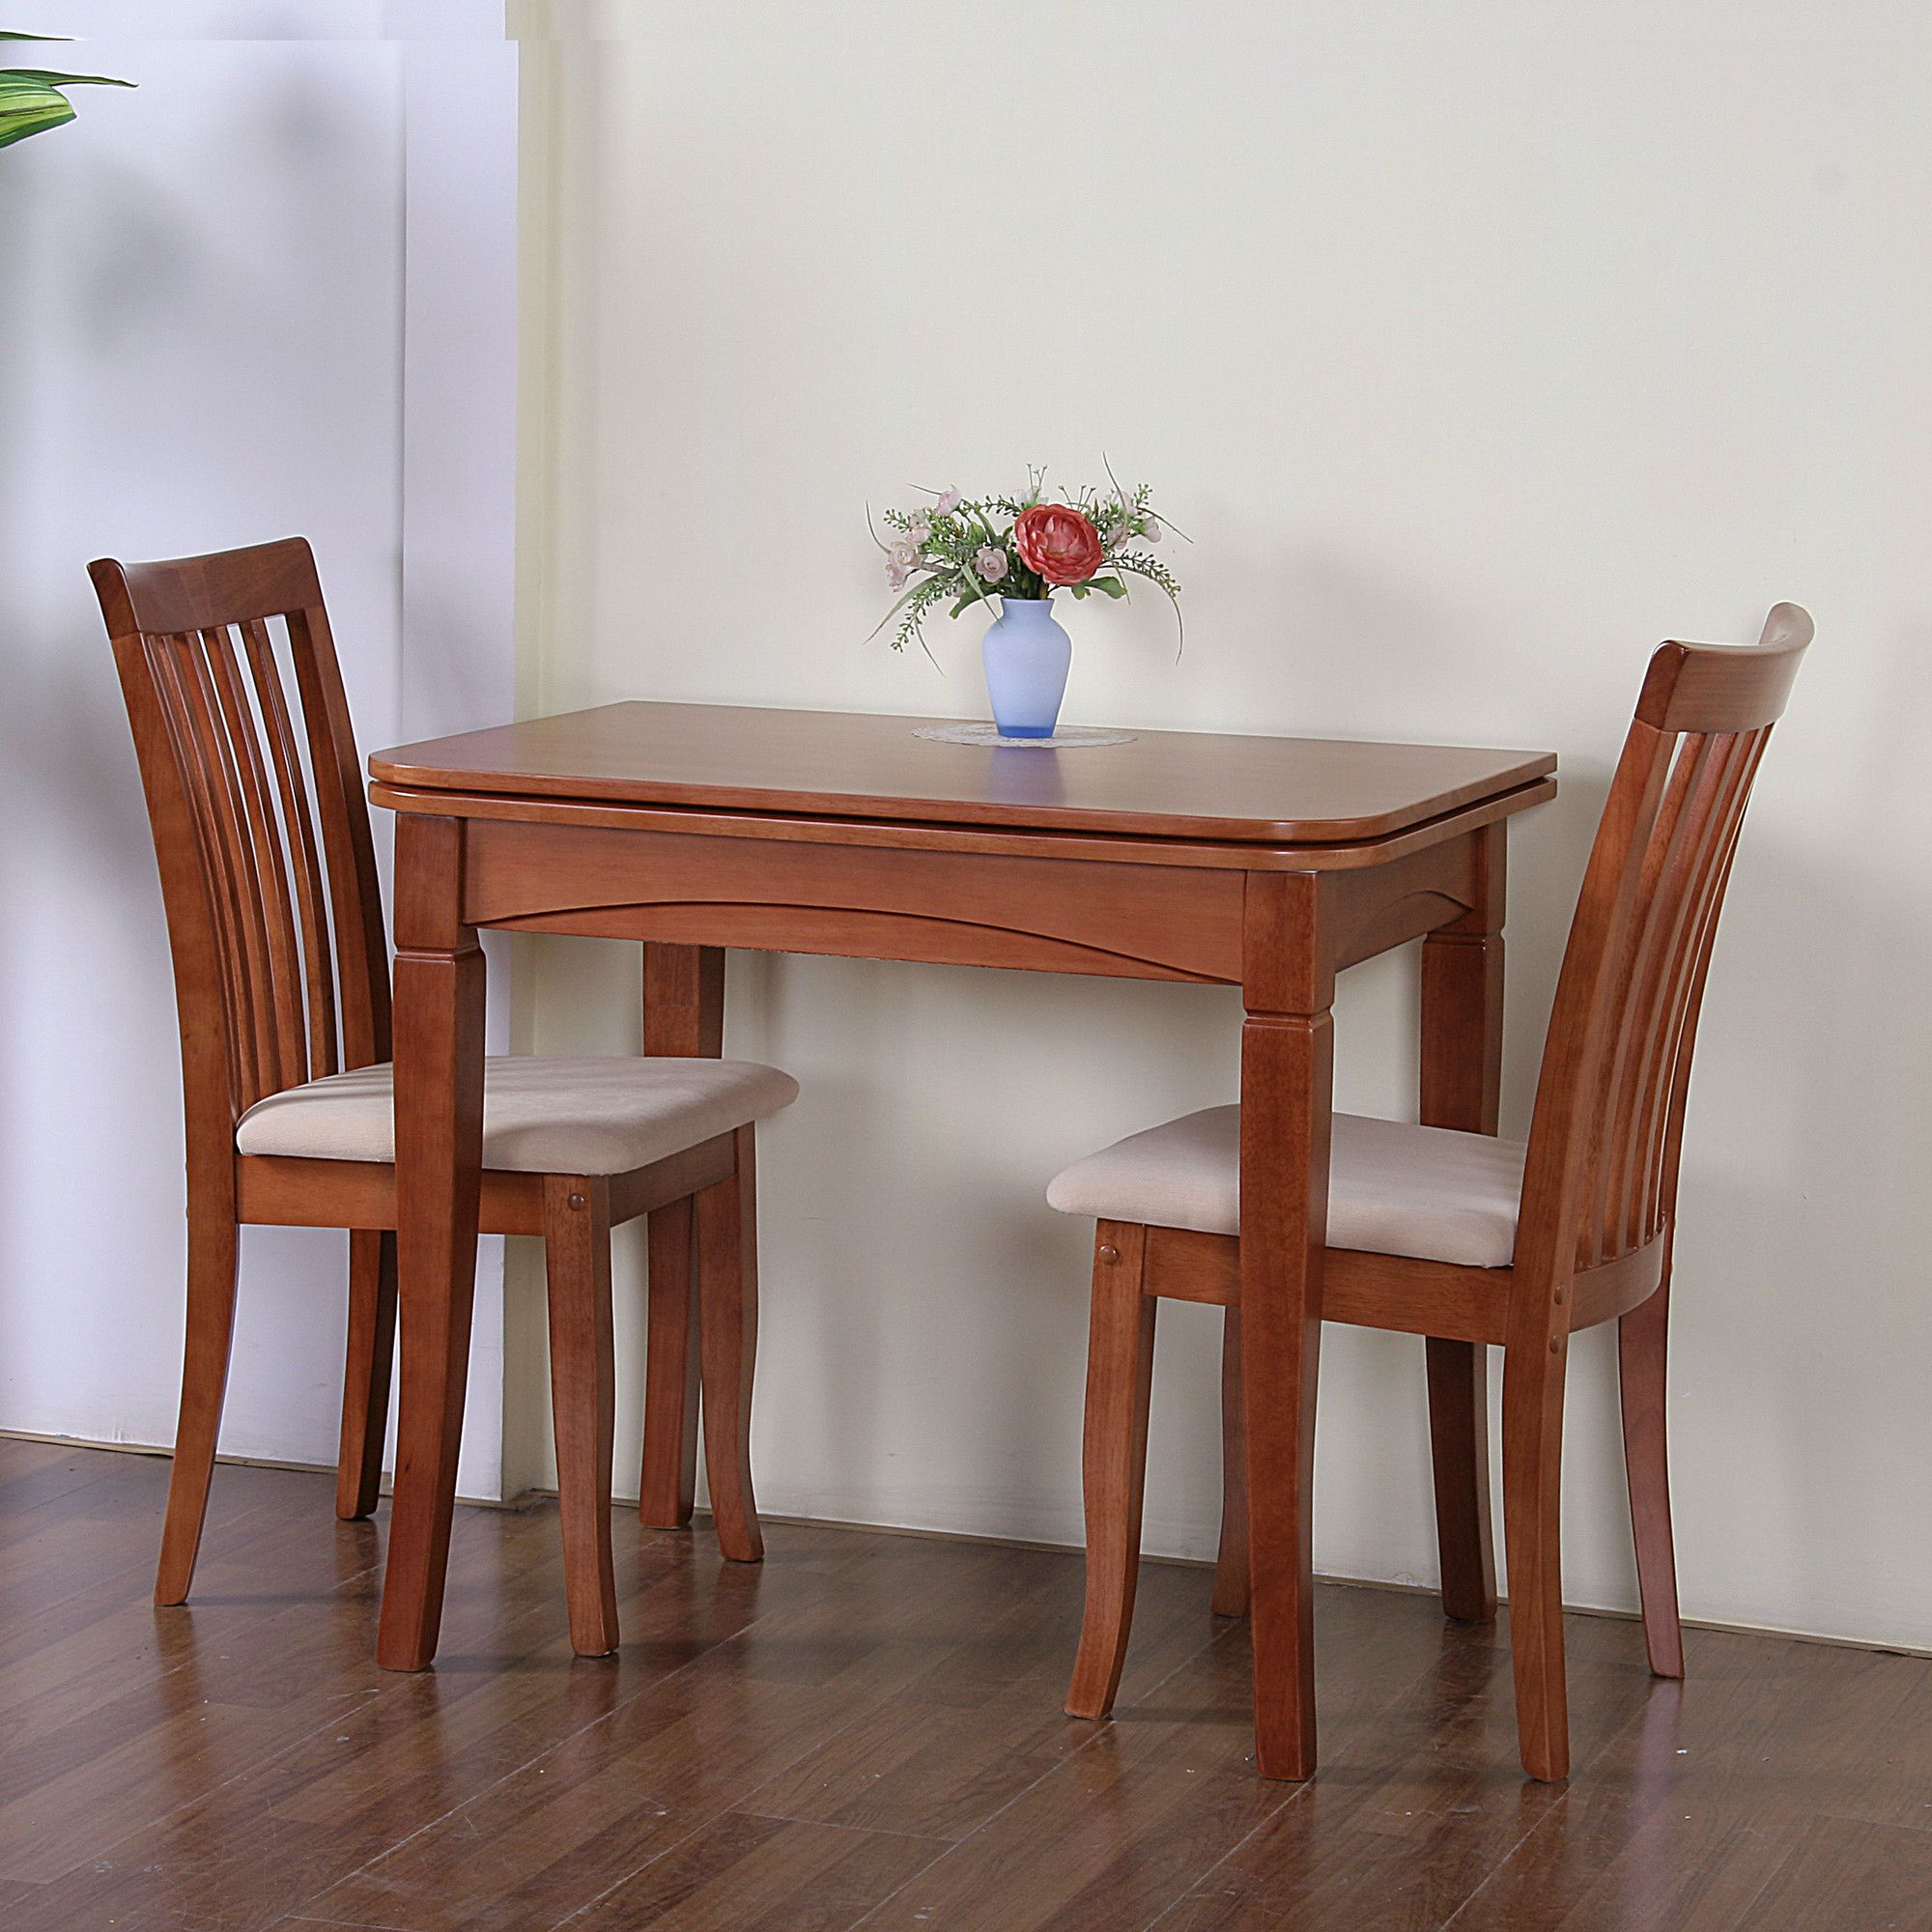 G&P Furniture Windsor House 3-Piece Newark Flip Top Dining Set - Cherry at Tescos Direct